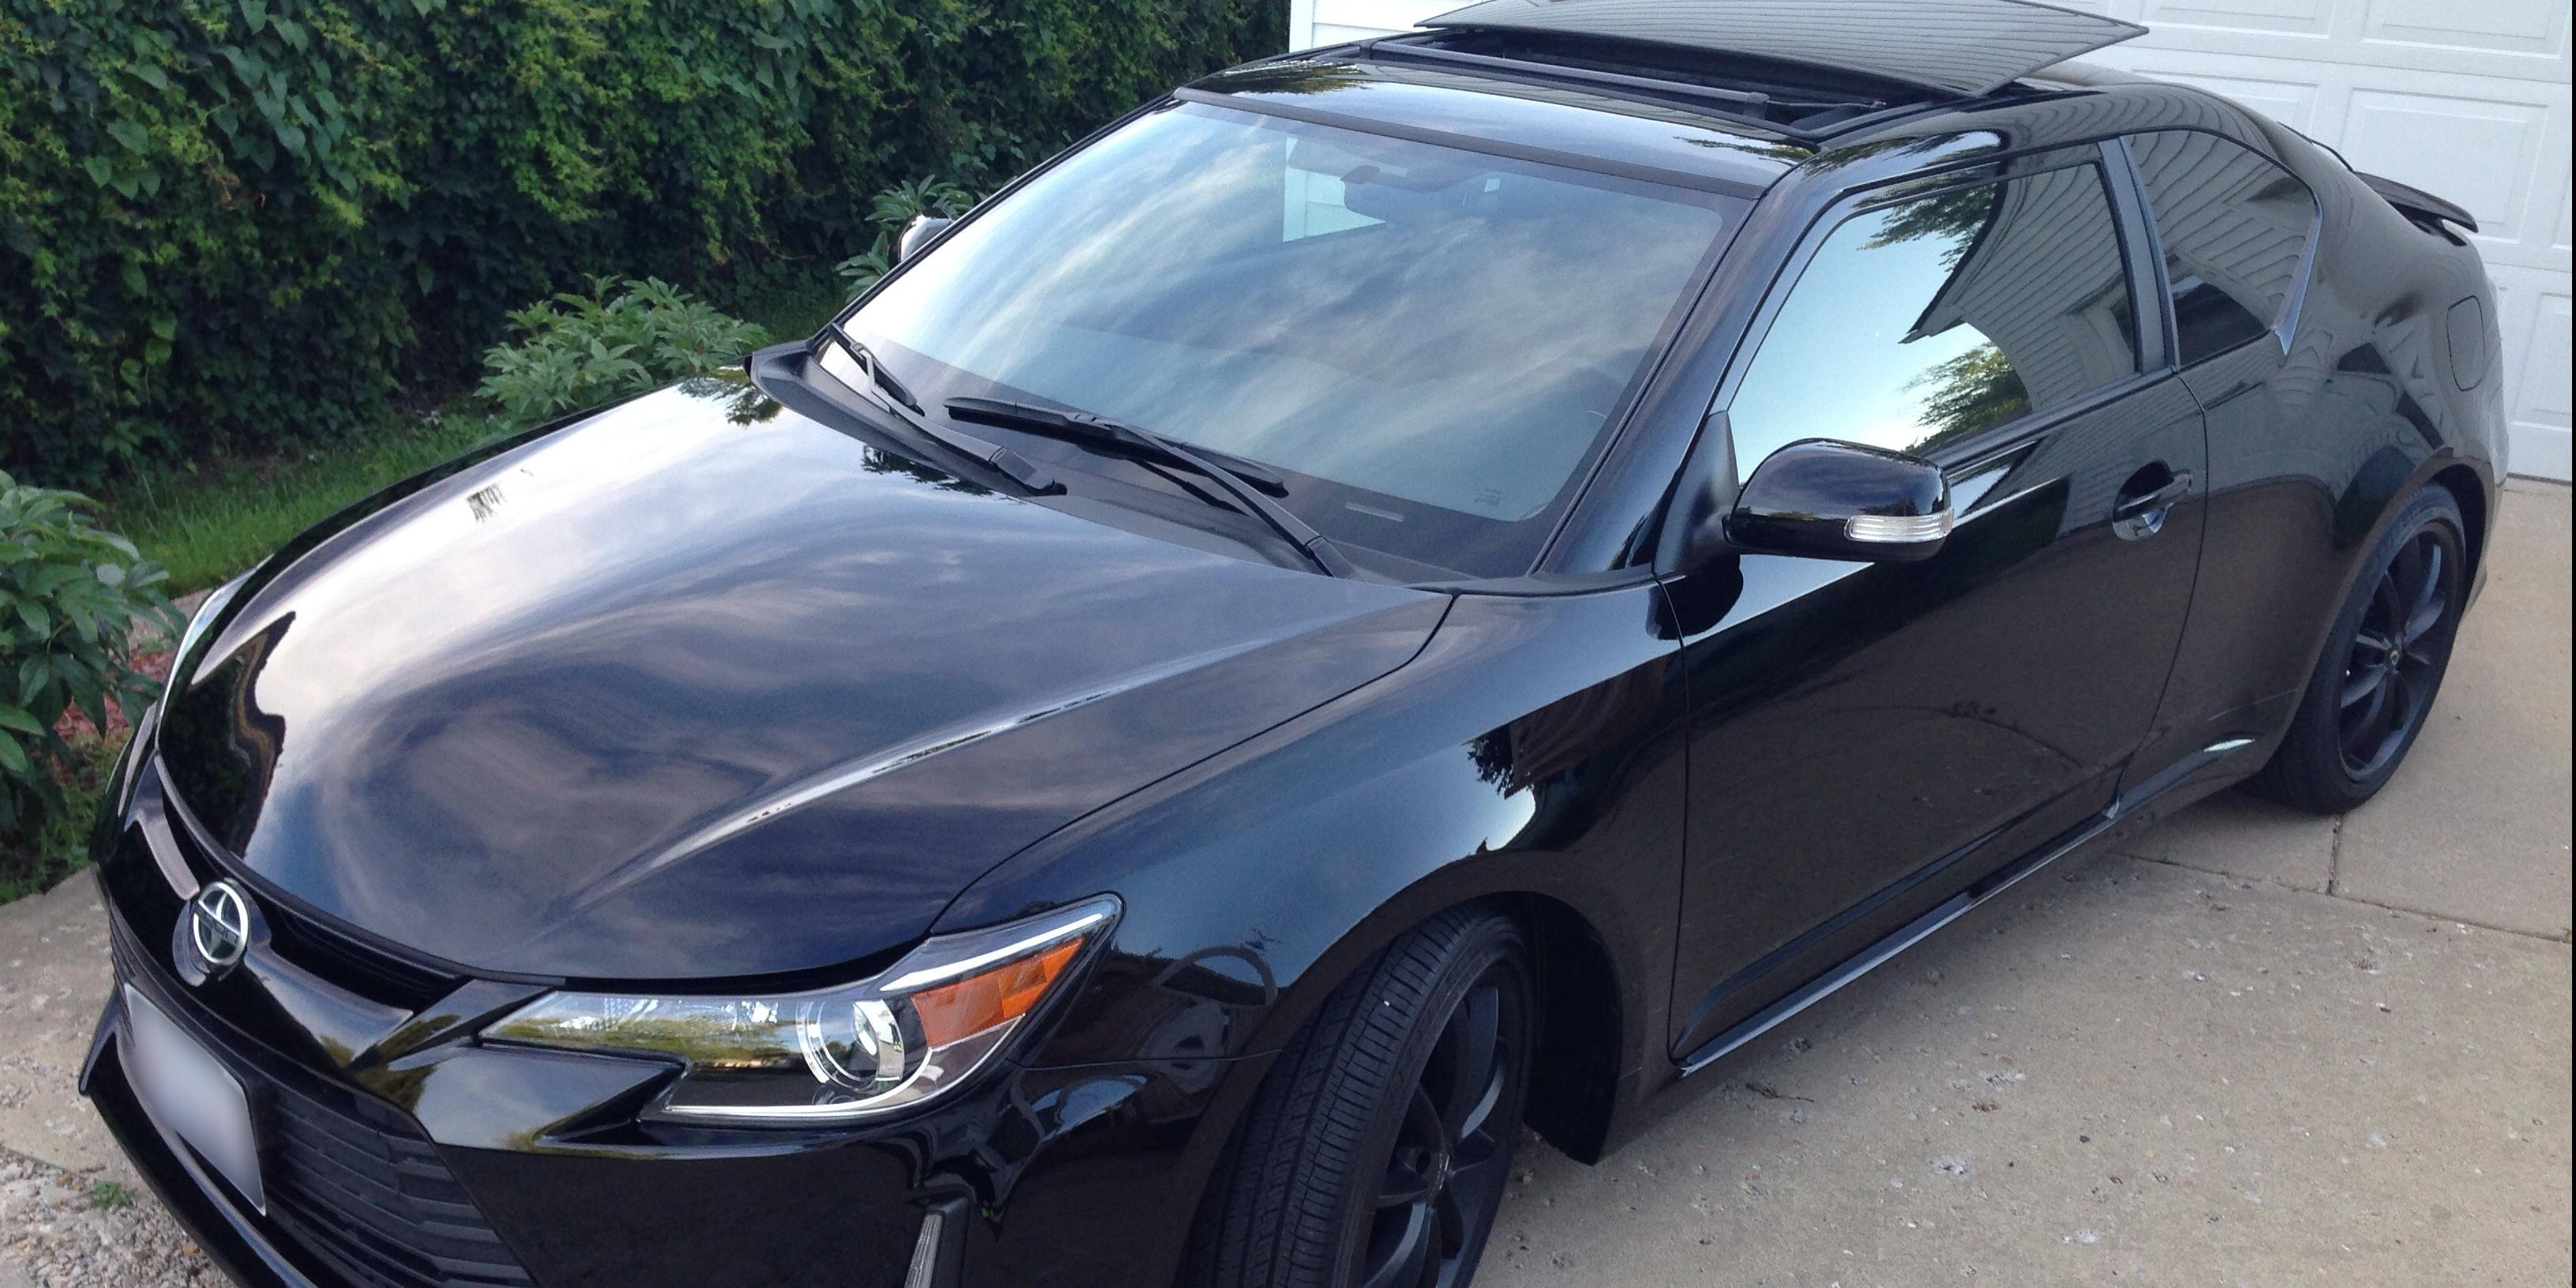 Nomar241 2014 Scion TC